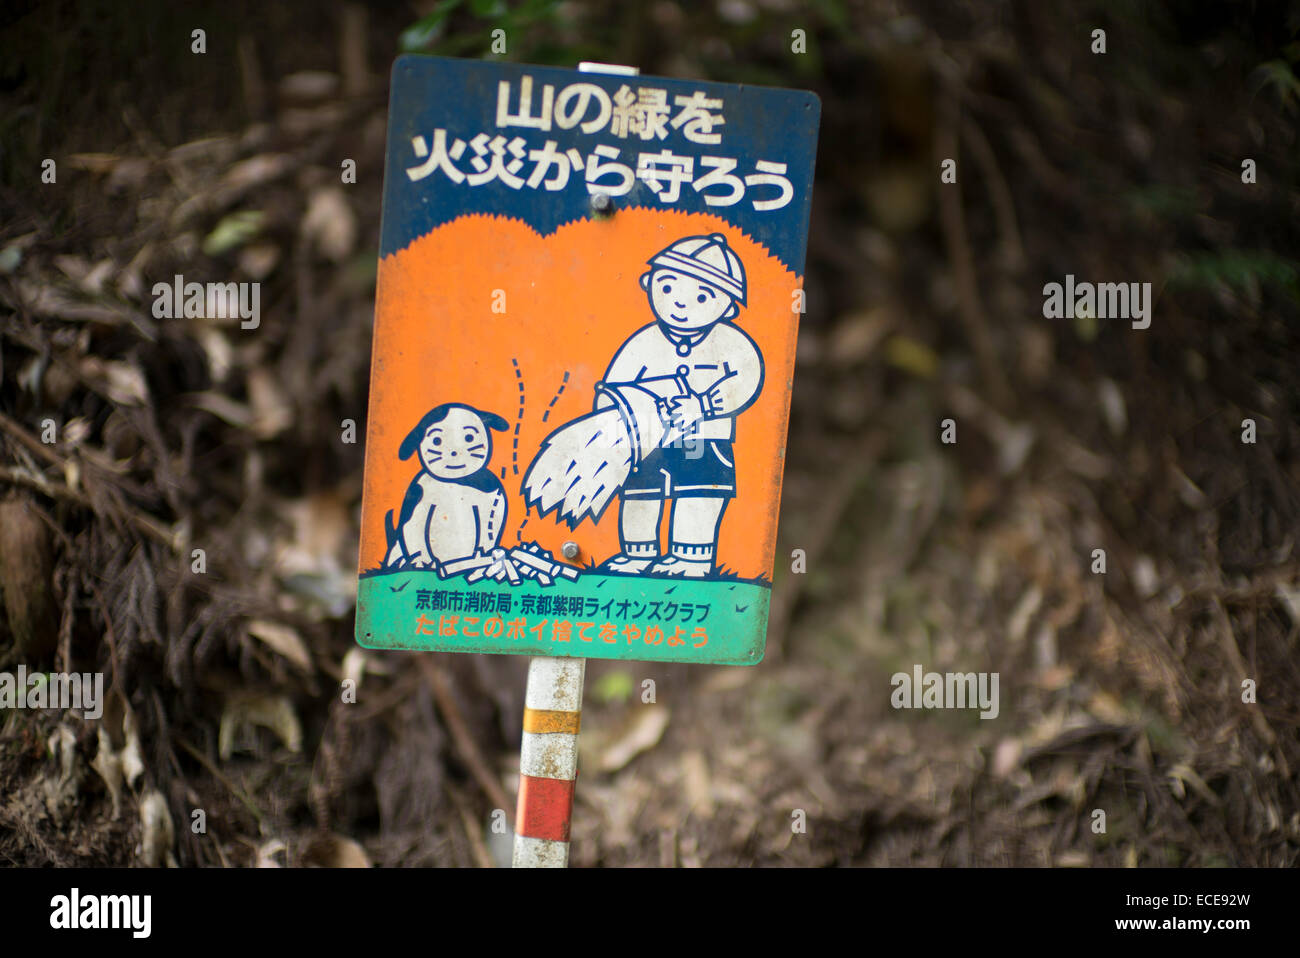 Japanese warning sign about open fires in the forest, Kyoto, Japan. Stock Photo